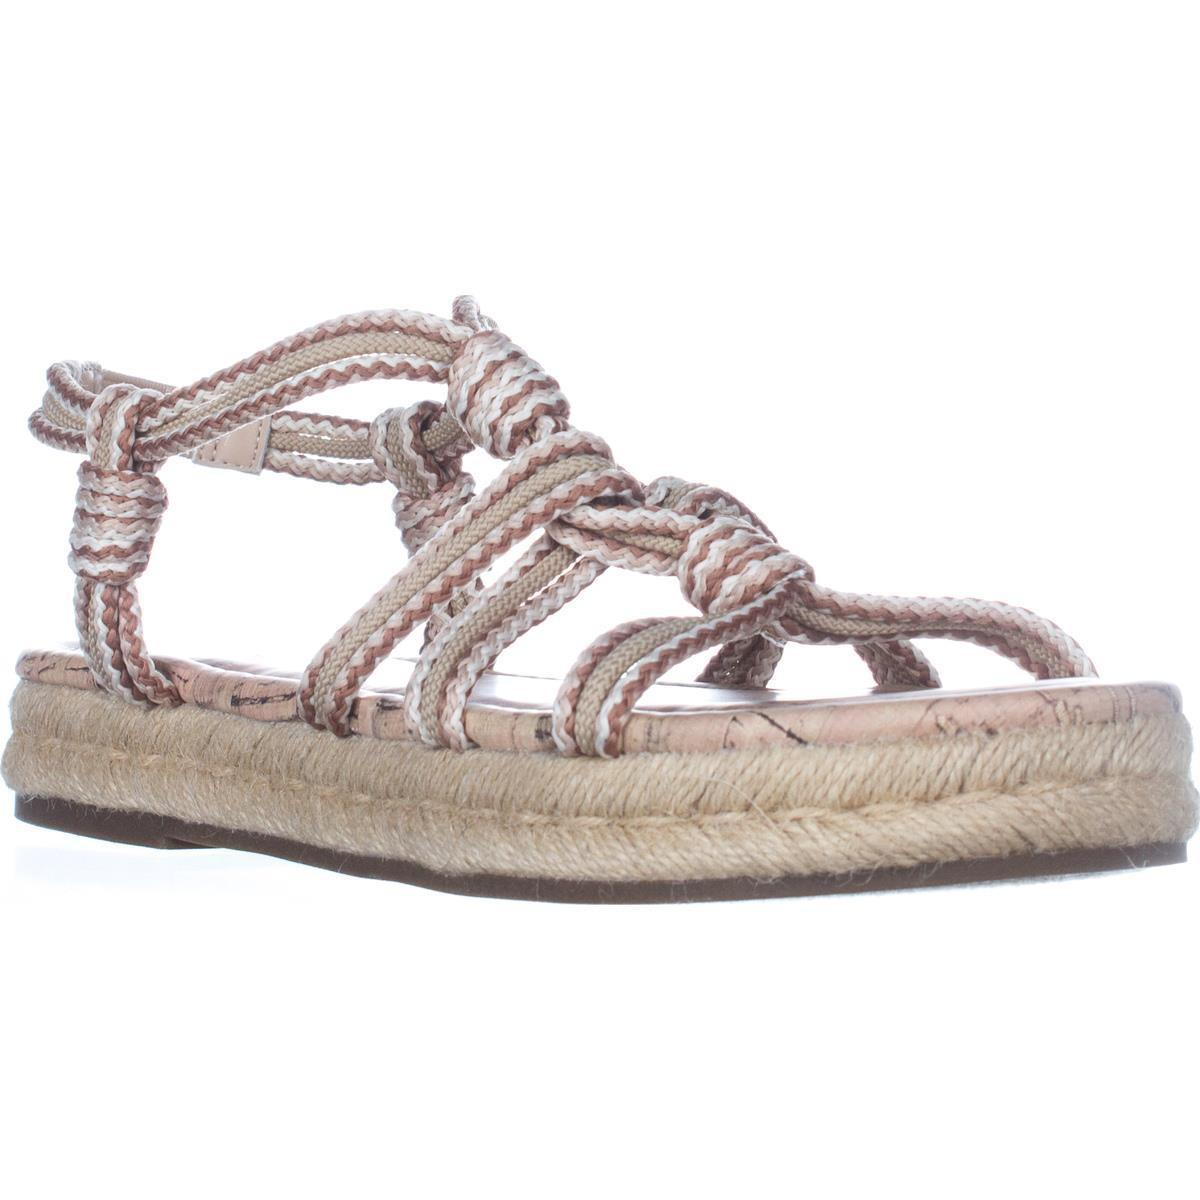 Sam Edelman Circus By Athena Flat Sandals In Natural Lyst